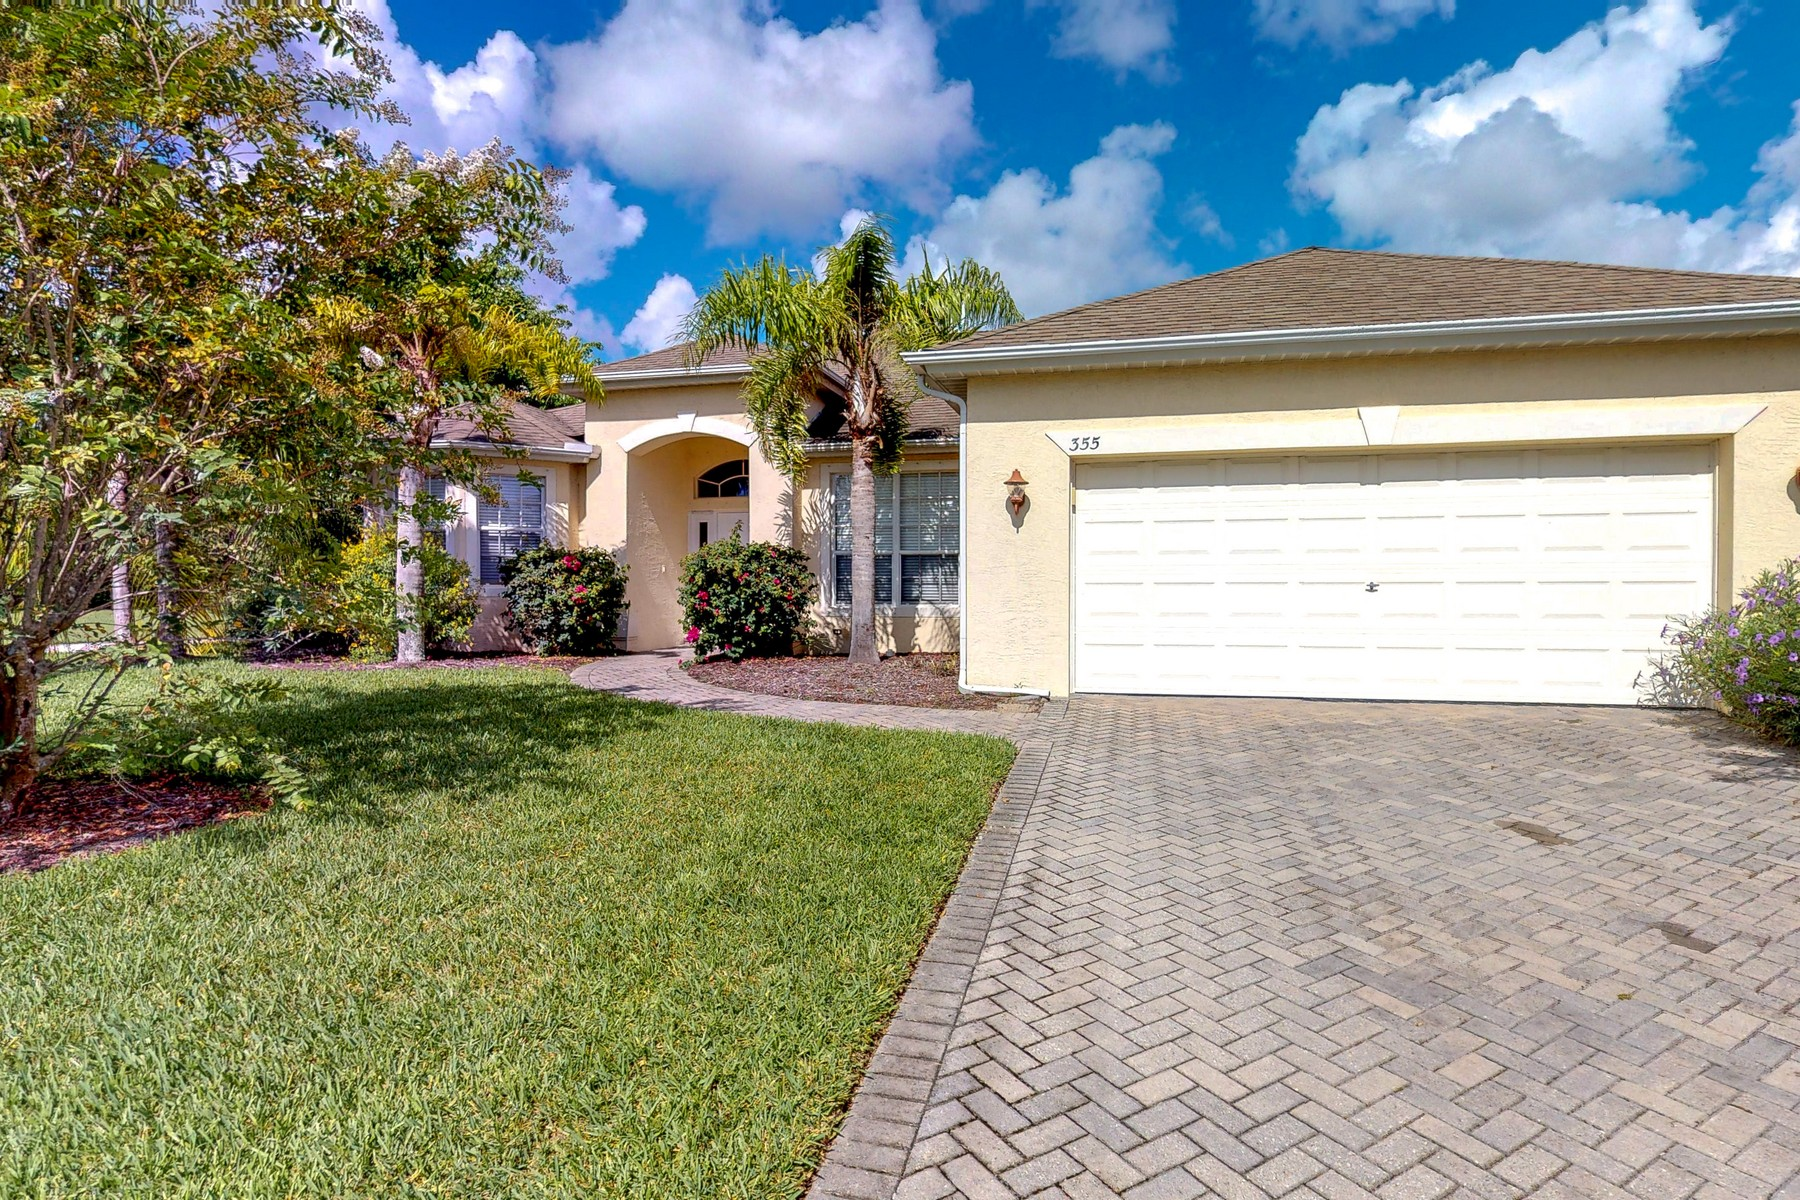 Single Family Homes for Sale at The Best Is Yours to Have in Citrus Springs 355 W Key Lime SQ SW Vero Beach, Florida 32968 United States